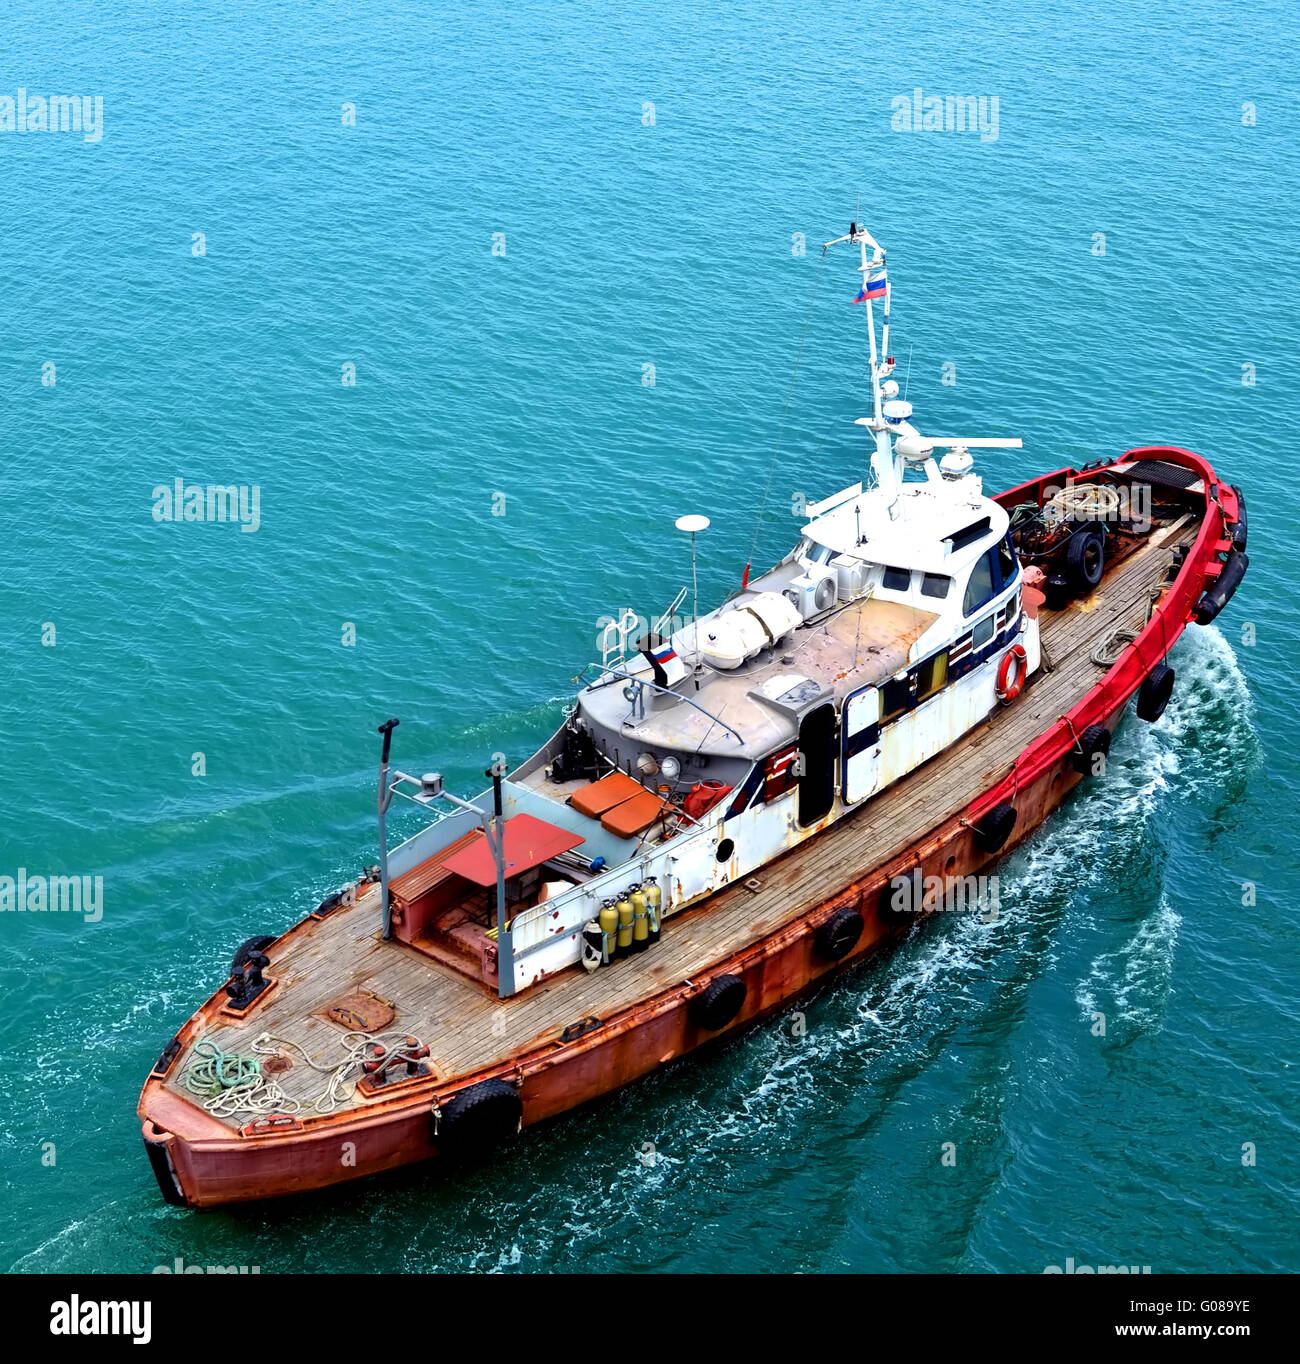 Old Tug Boat Stock Photos & Old Tug Boat Stock Images